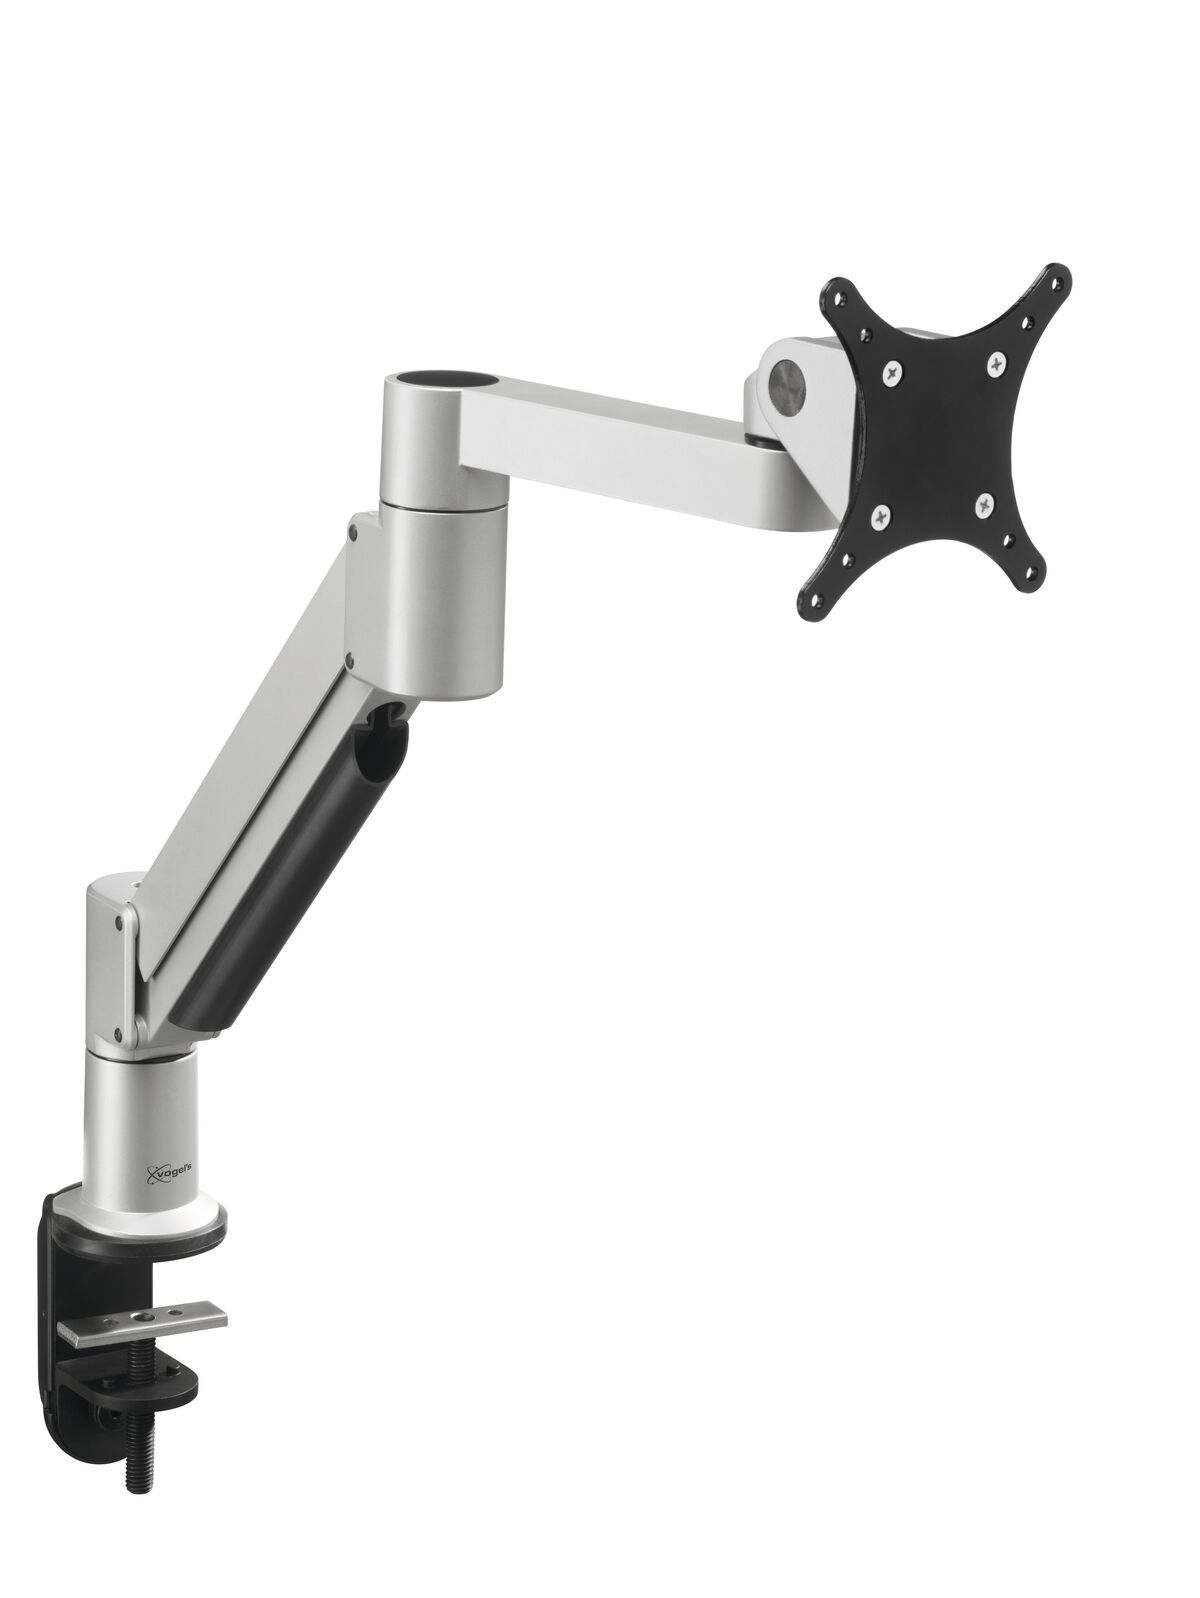 Vogel's PFD 8541 Monitor mount dynamic silver - For skærme op til 5.7 kg - Ideelt egnet til Gaming og (Home) Office - Product